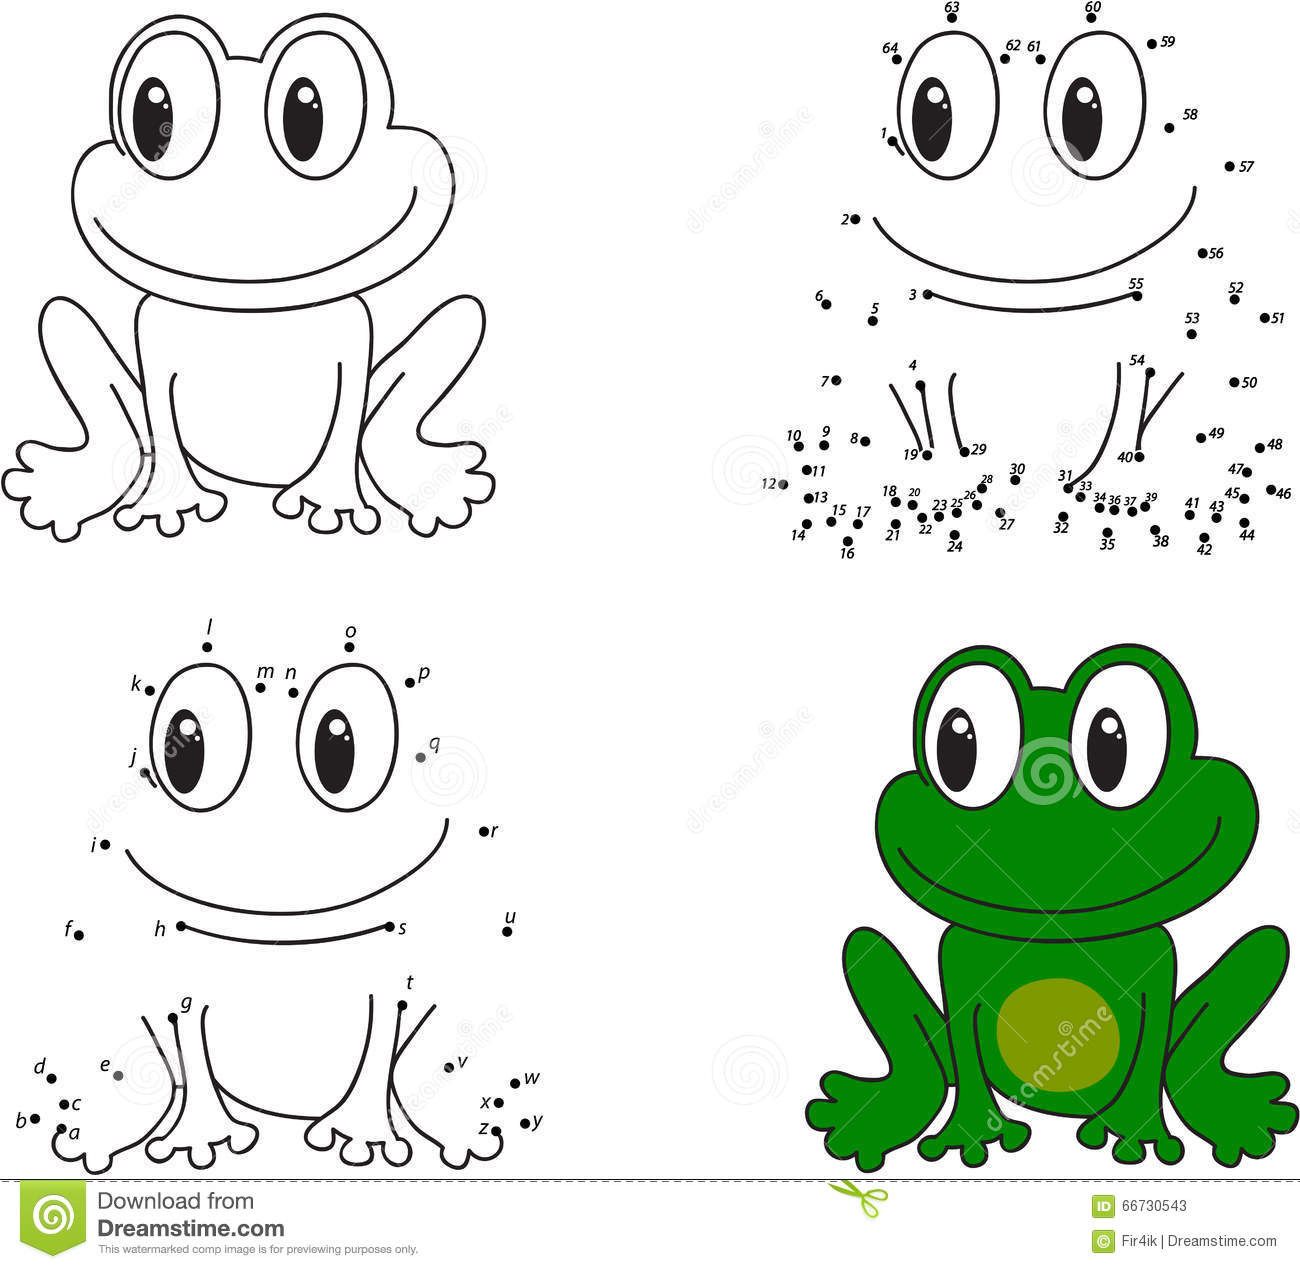 Cartoon Frog Coloring Book And Dot To Dot Game For Kids